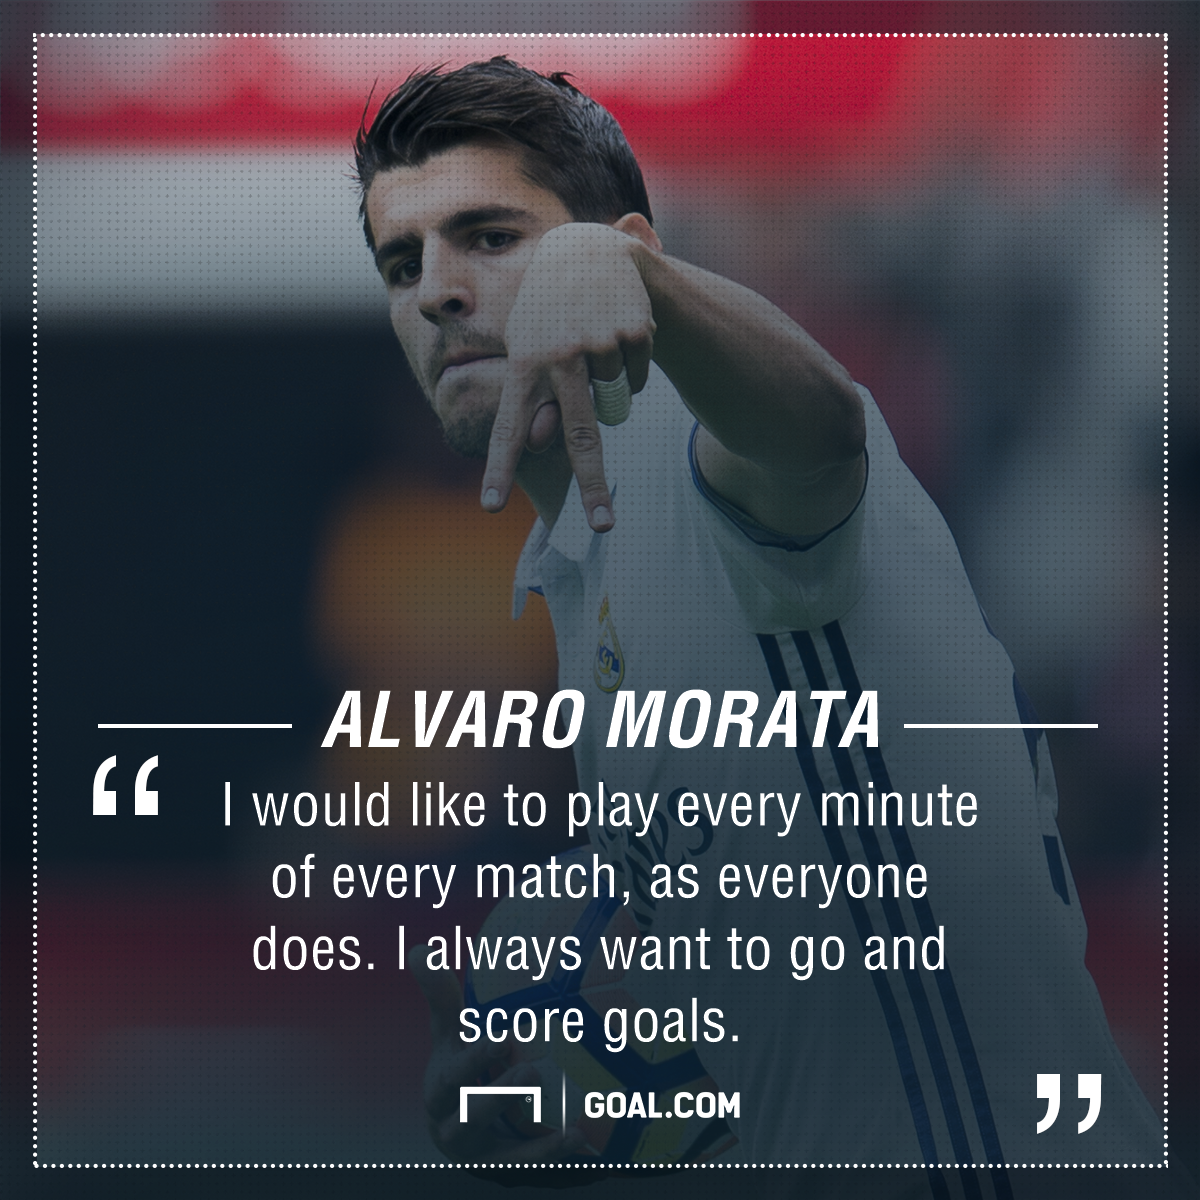 Alvaro Morata goals game time